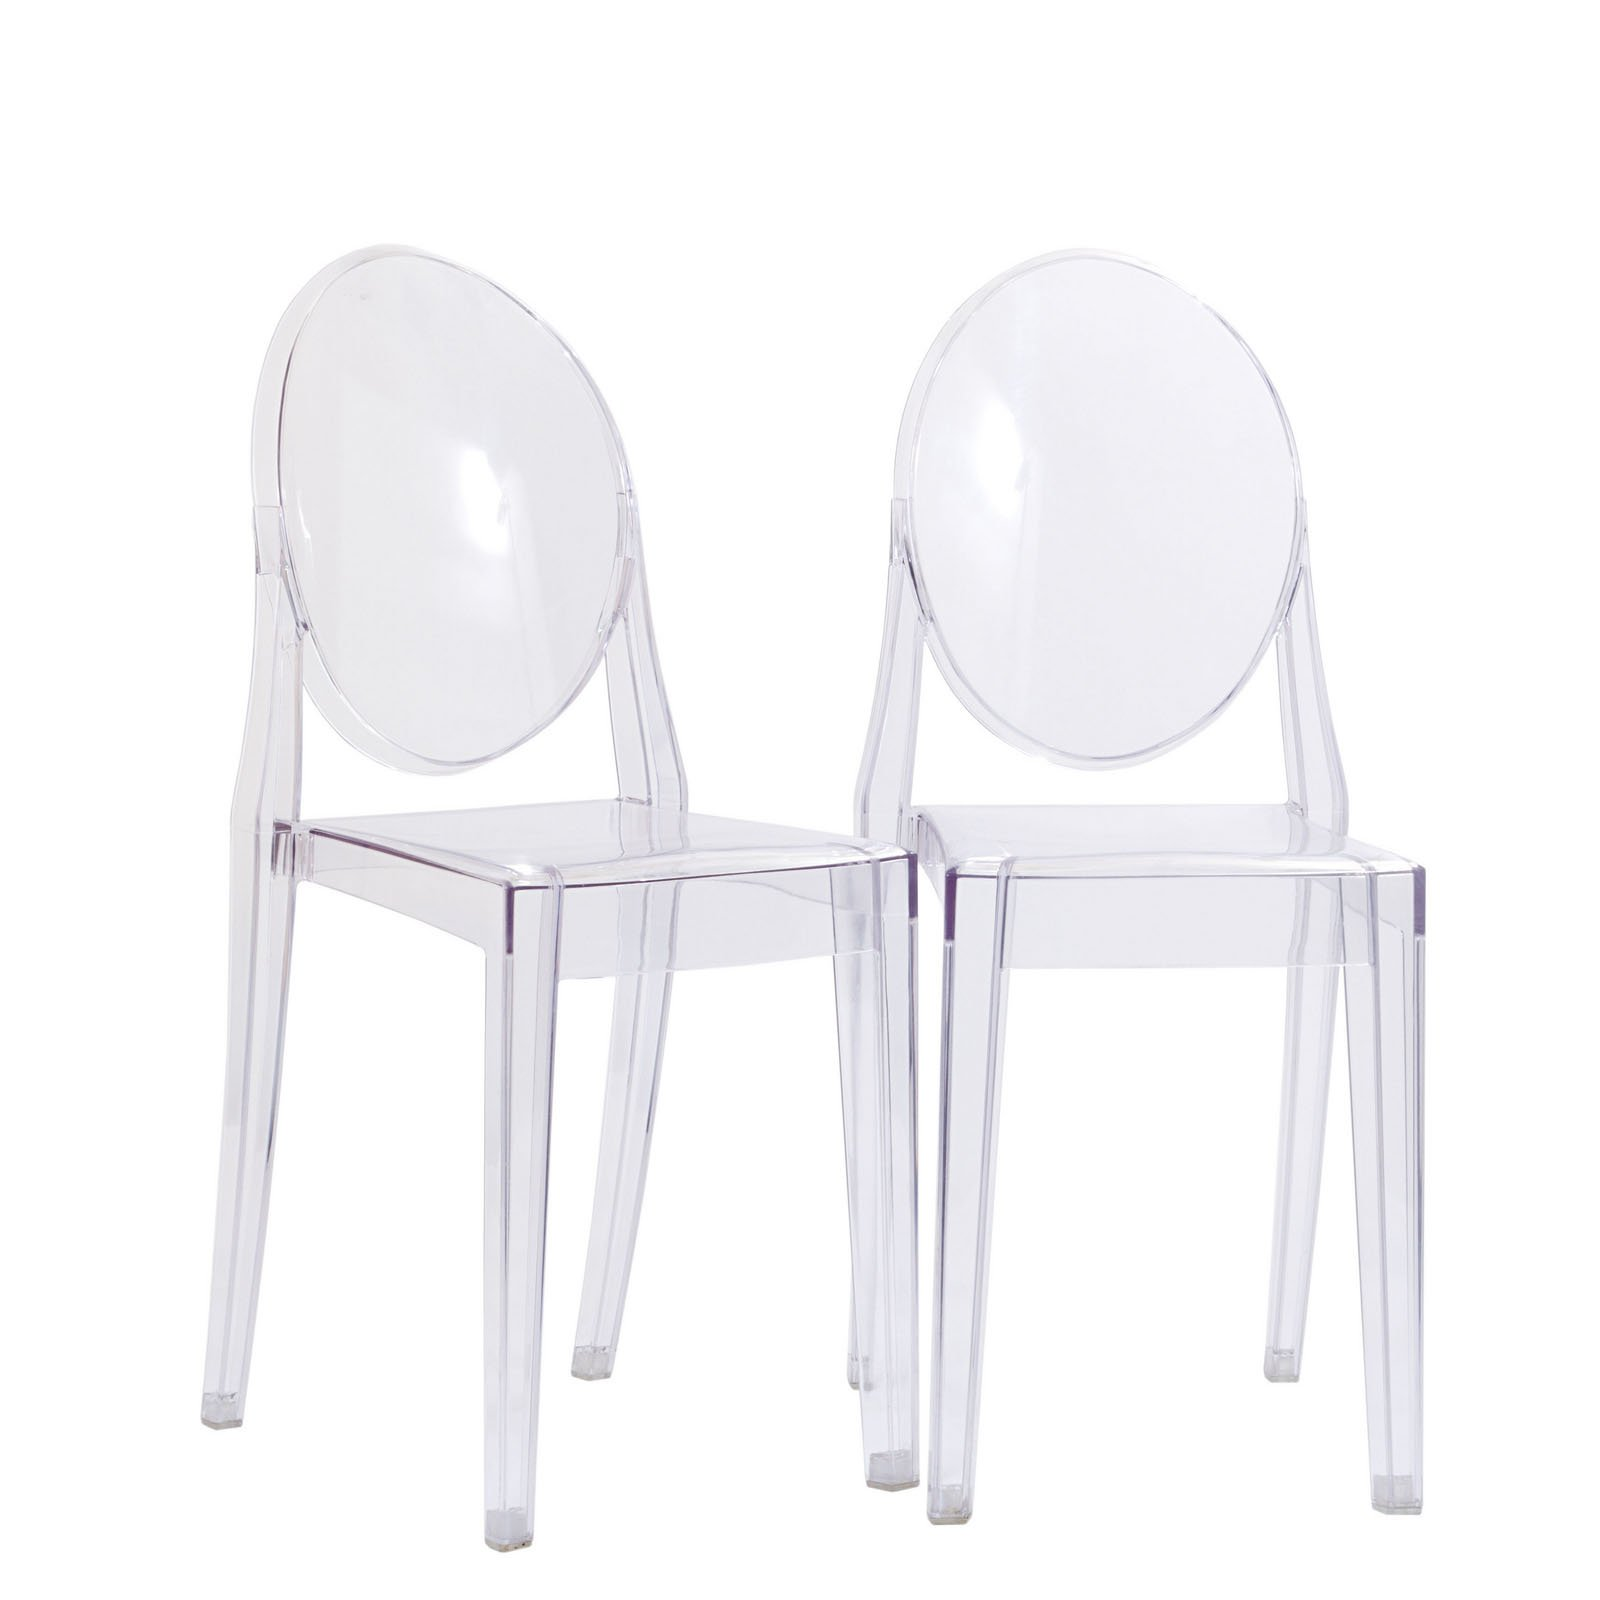 Modway Casper Modern Acrylic Dining Side Chairs in Clear - Set of 2 by Modway